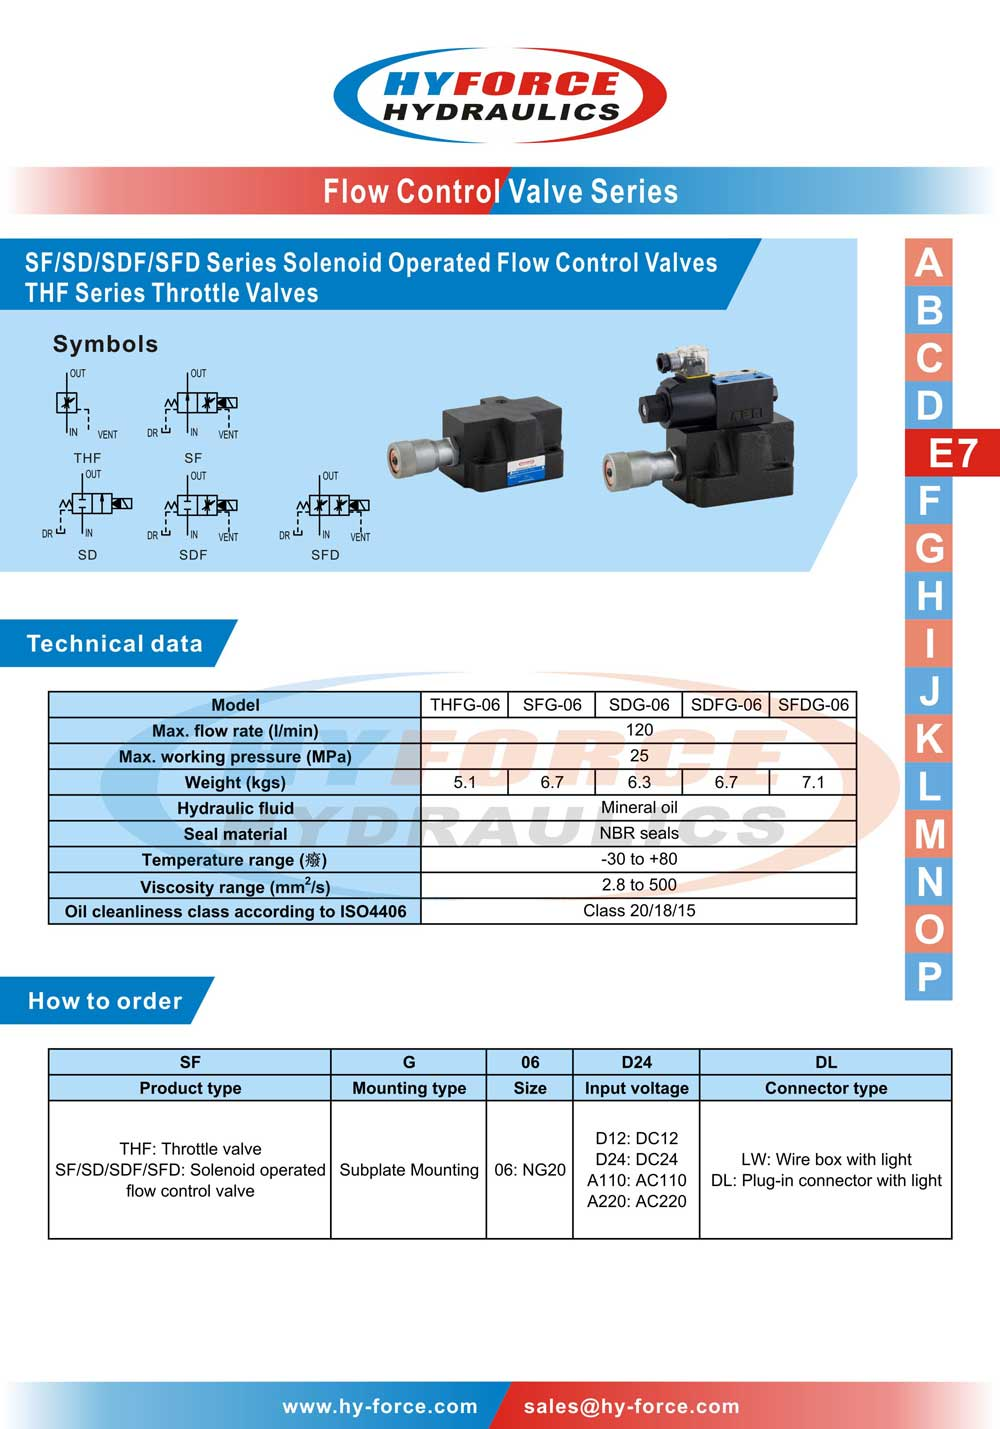 Sfsdsdfsfd series solenoid operated flow control valves thf technical data how to order spool symbols dimensions nvjuhfo Choice Image